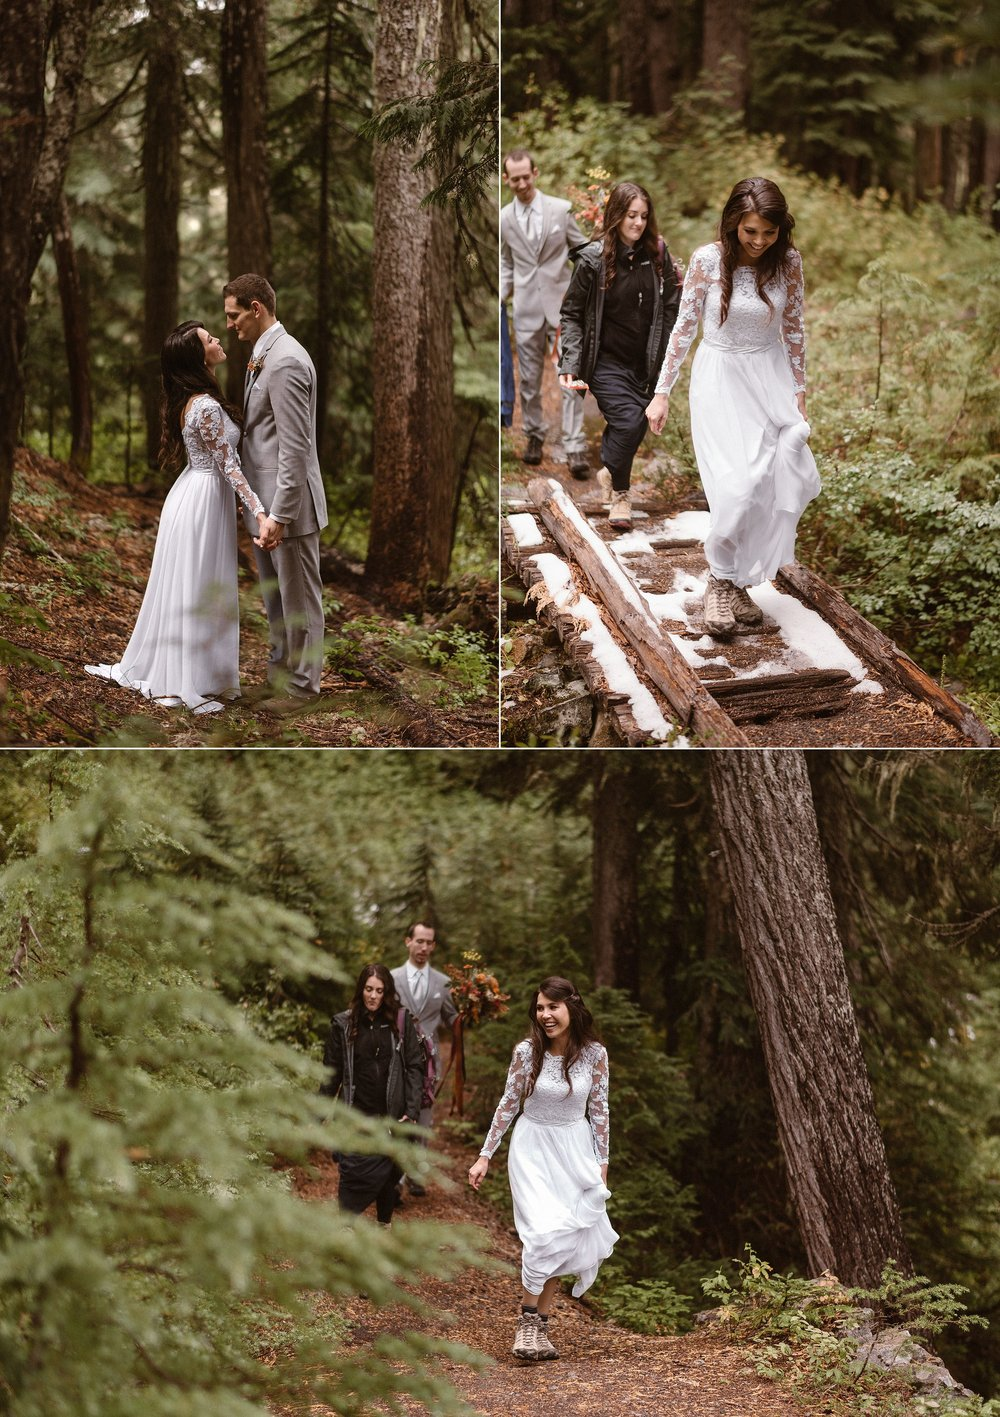 They hiked back to the fork in the road where they said their goodbyes to their friends and began their hiking adventure with their traveling elopement photographer Maddie Mae. Their plans of eloping in two other locations in Washington state were foiled so with help of their destination wedding photographer they were able to find a perfect private location in Mount Rainier National Park.